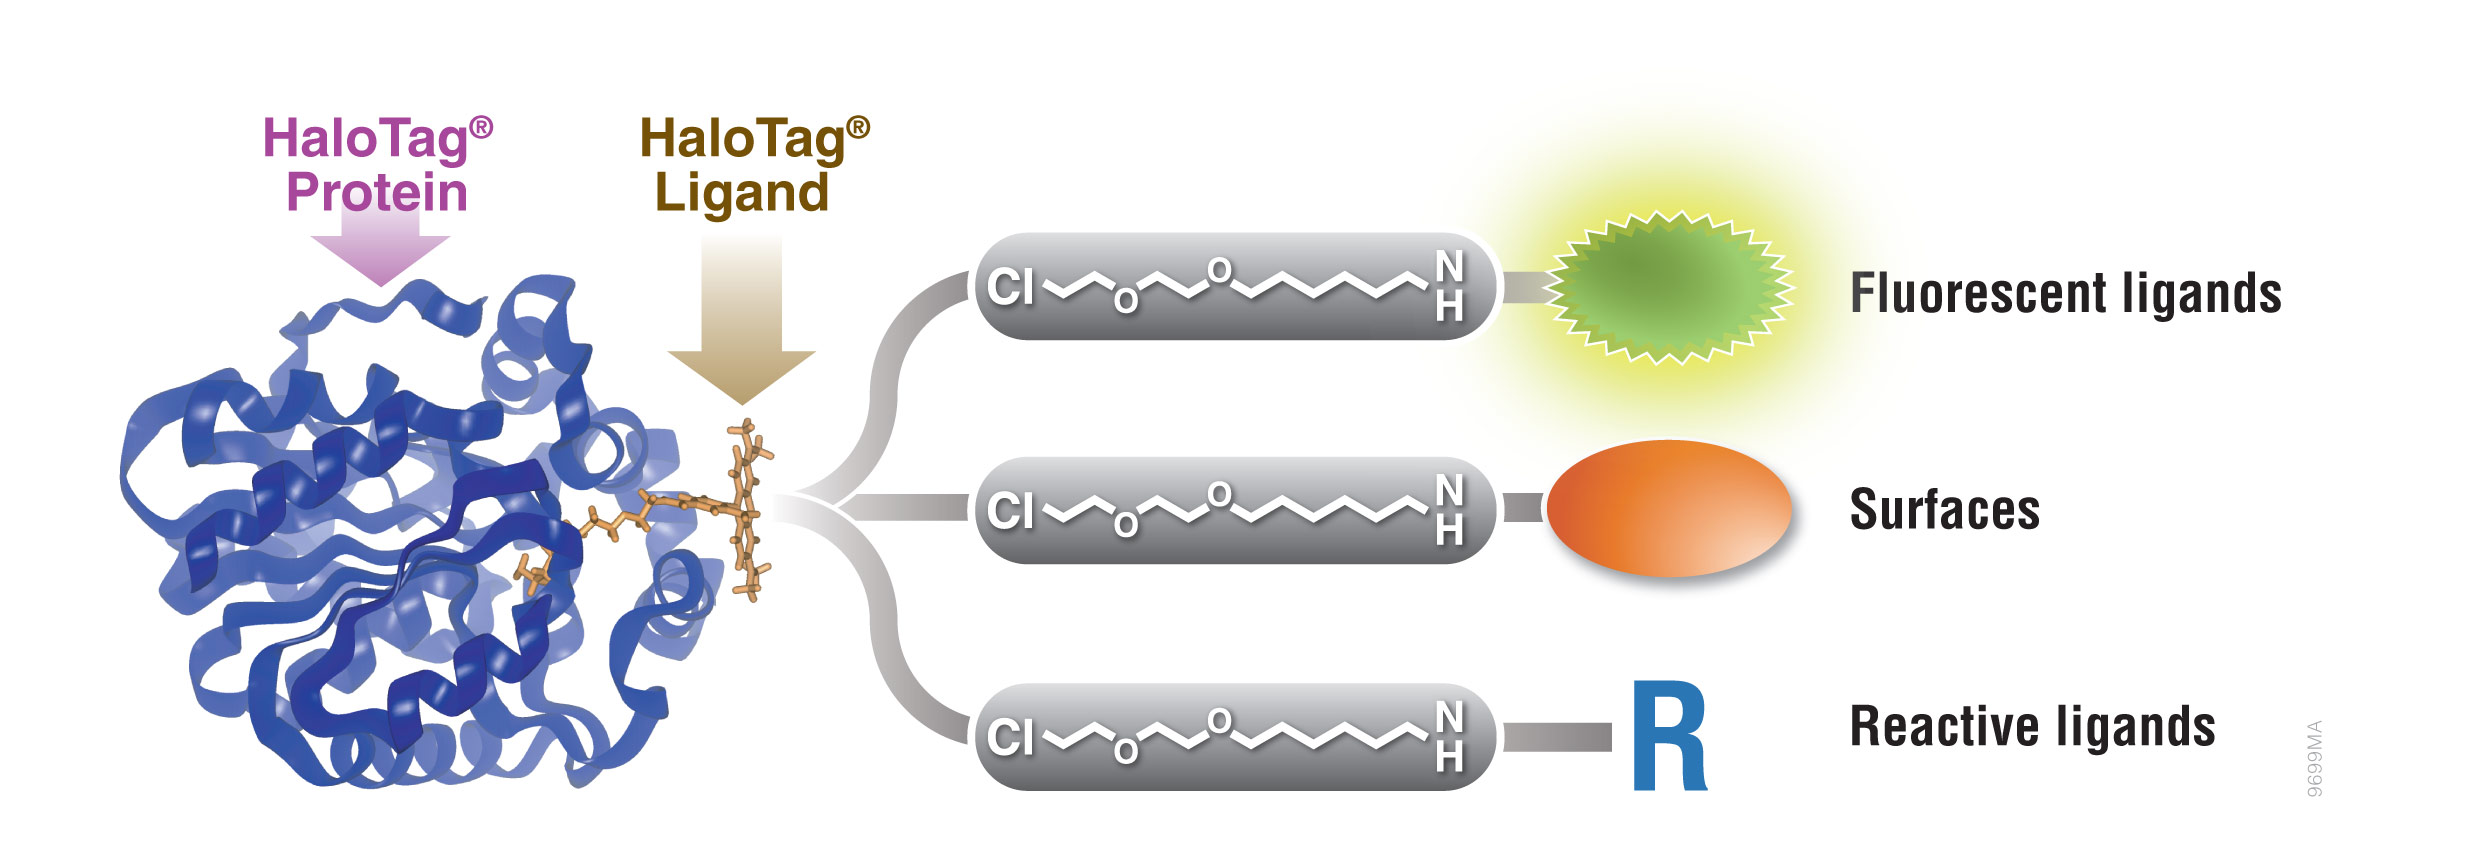 protein labeling with halotag